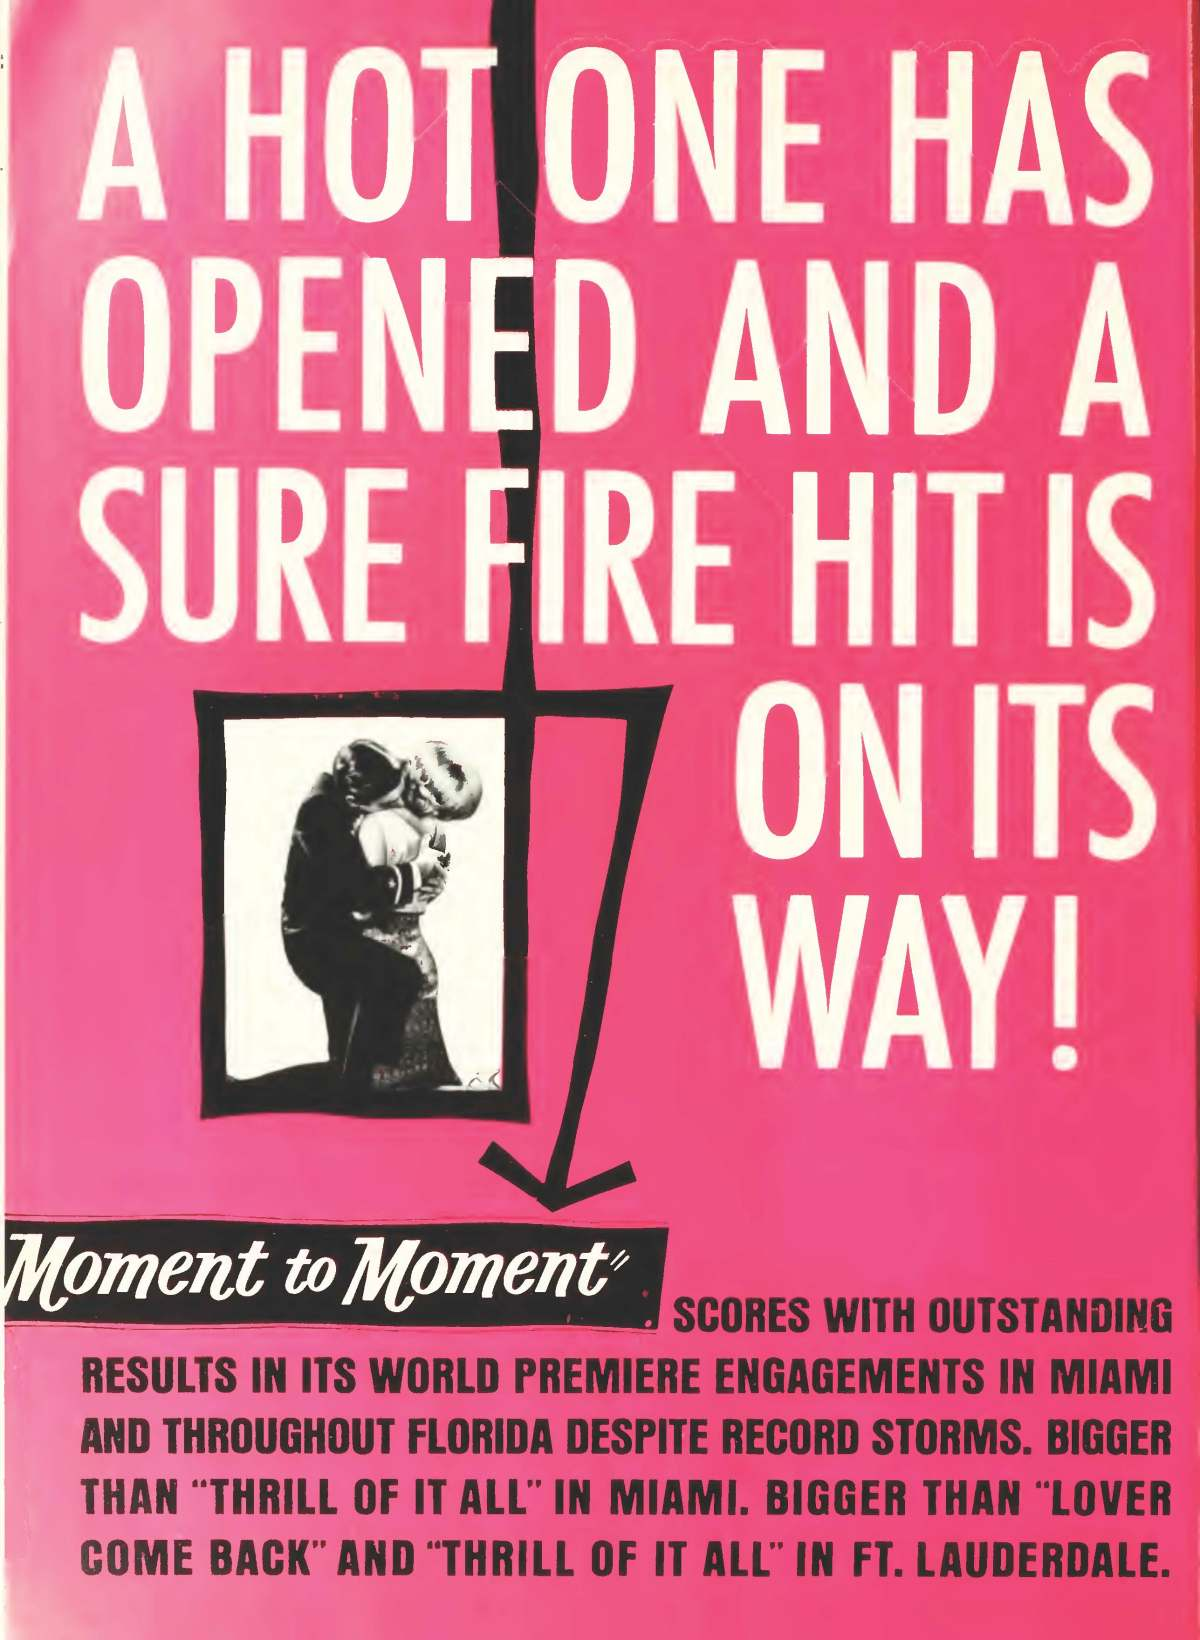 Moment to Moment (1966)***